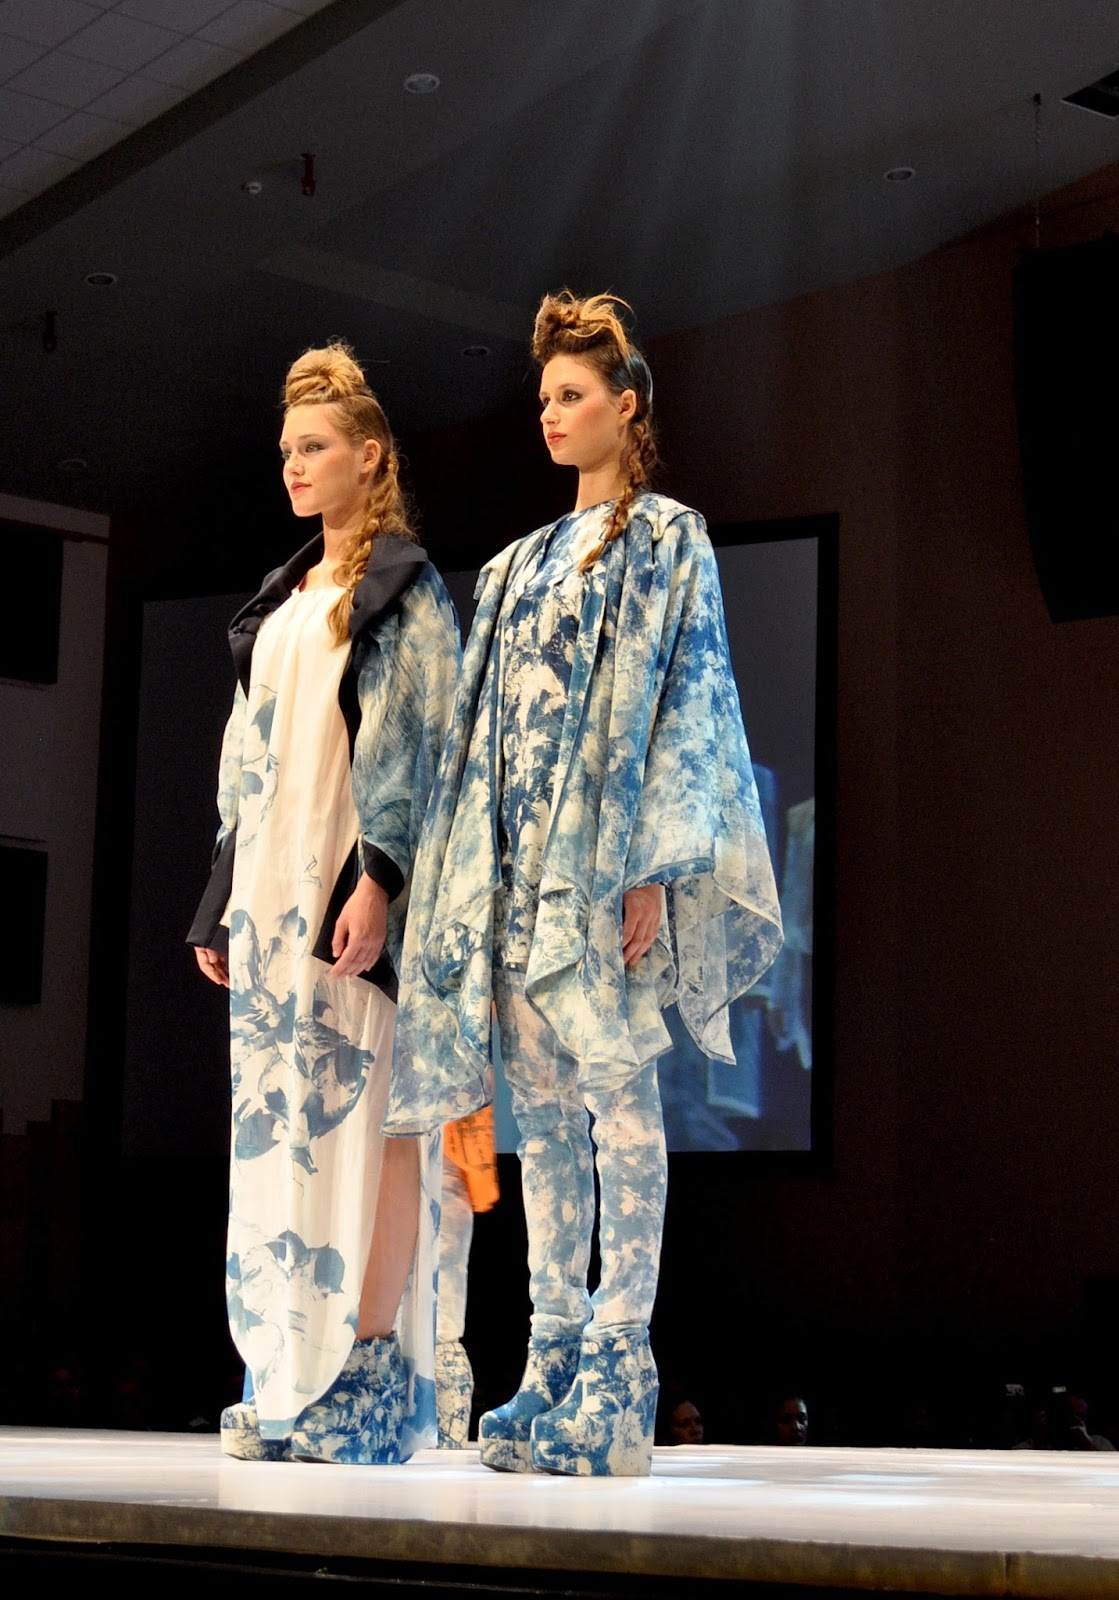 Brankopopovicblog tessa wagenvoort show in mauritius Fashion style mauritius email